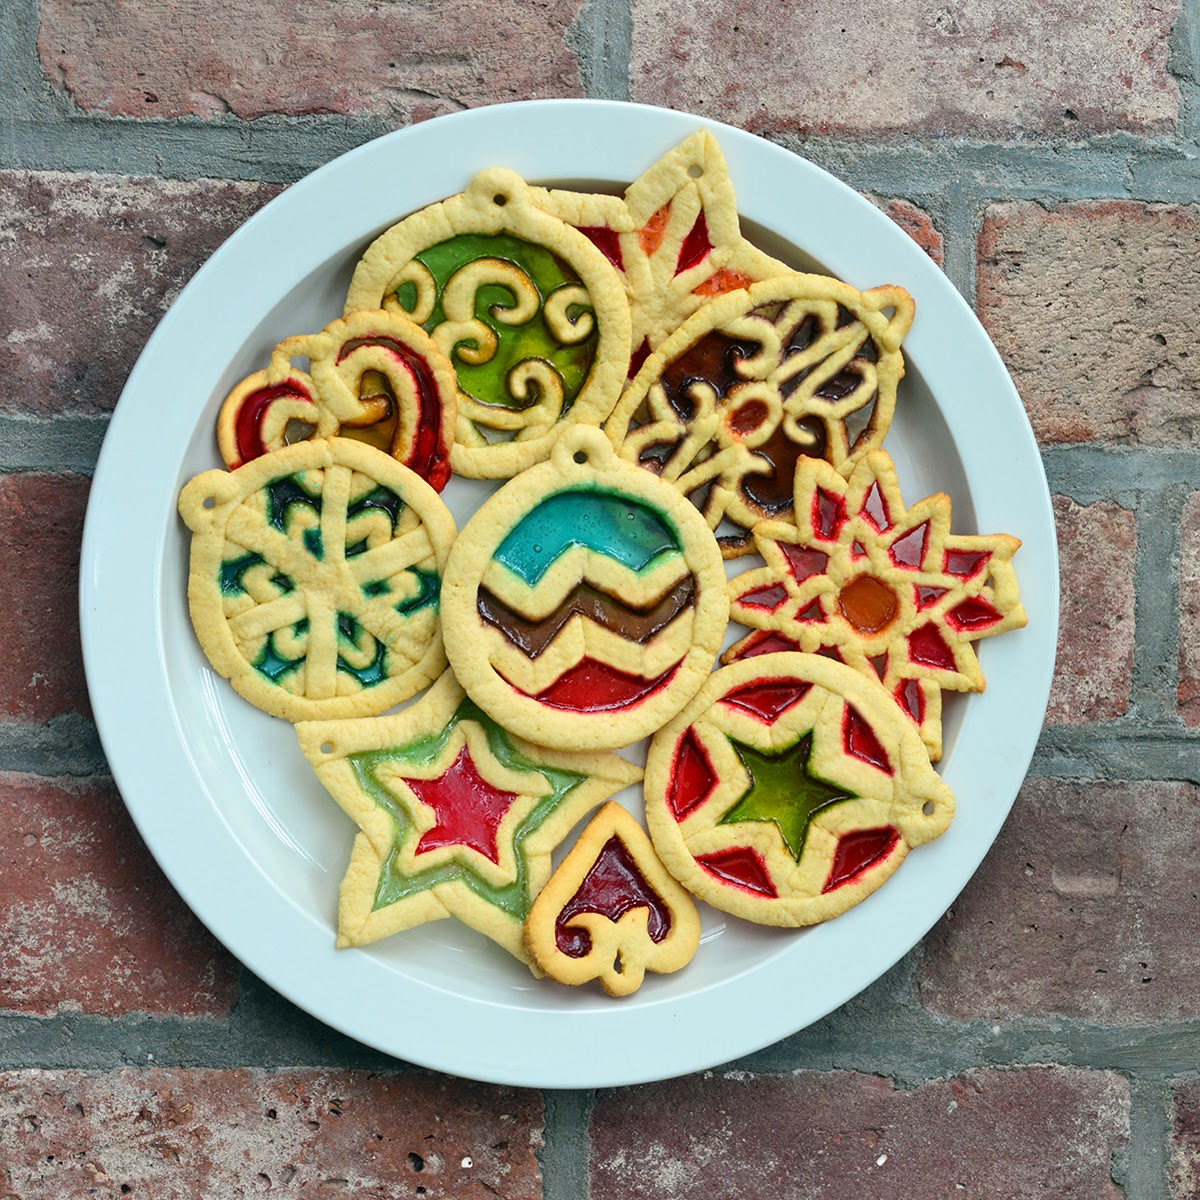 So, I make stuff: Stained Glass Cookies